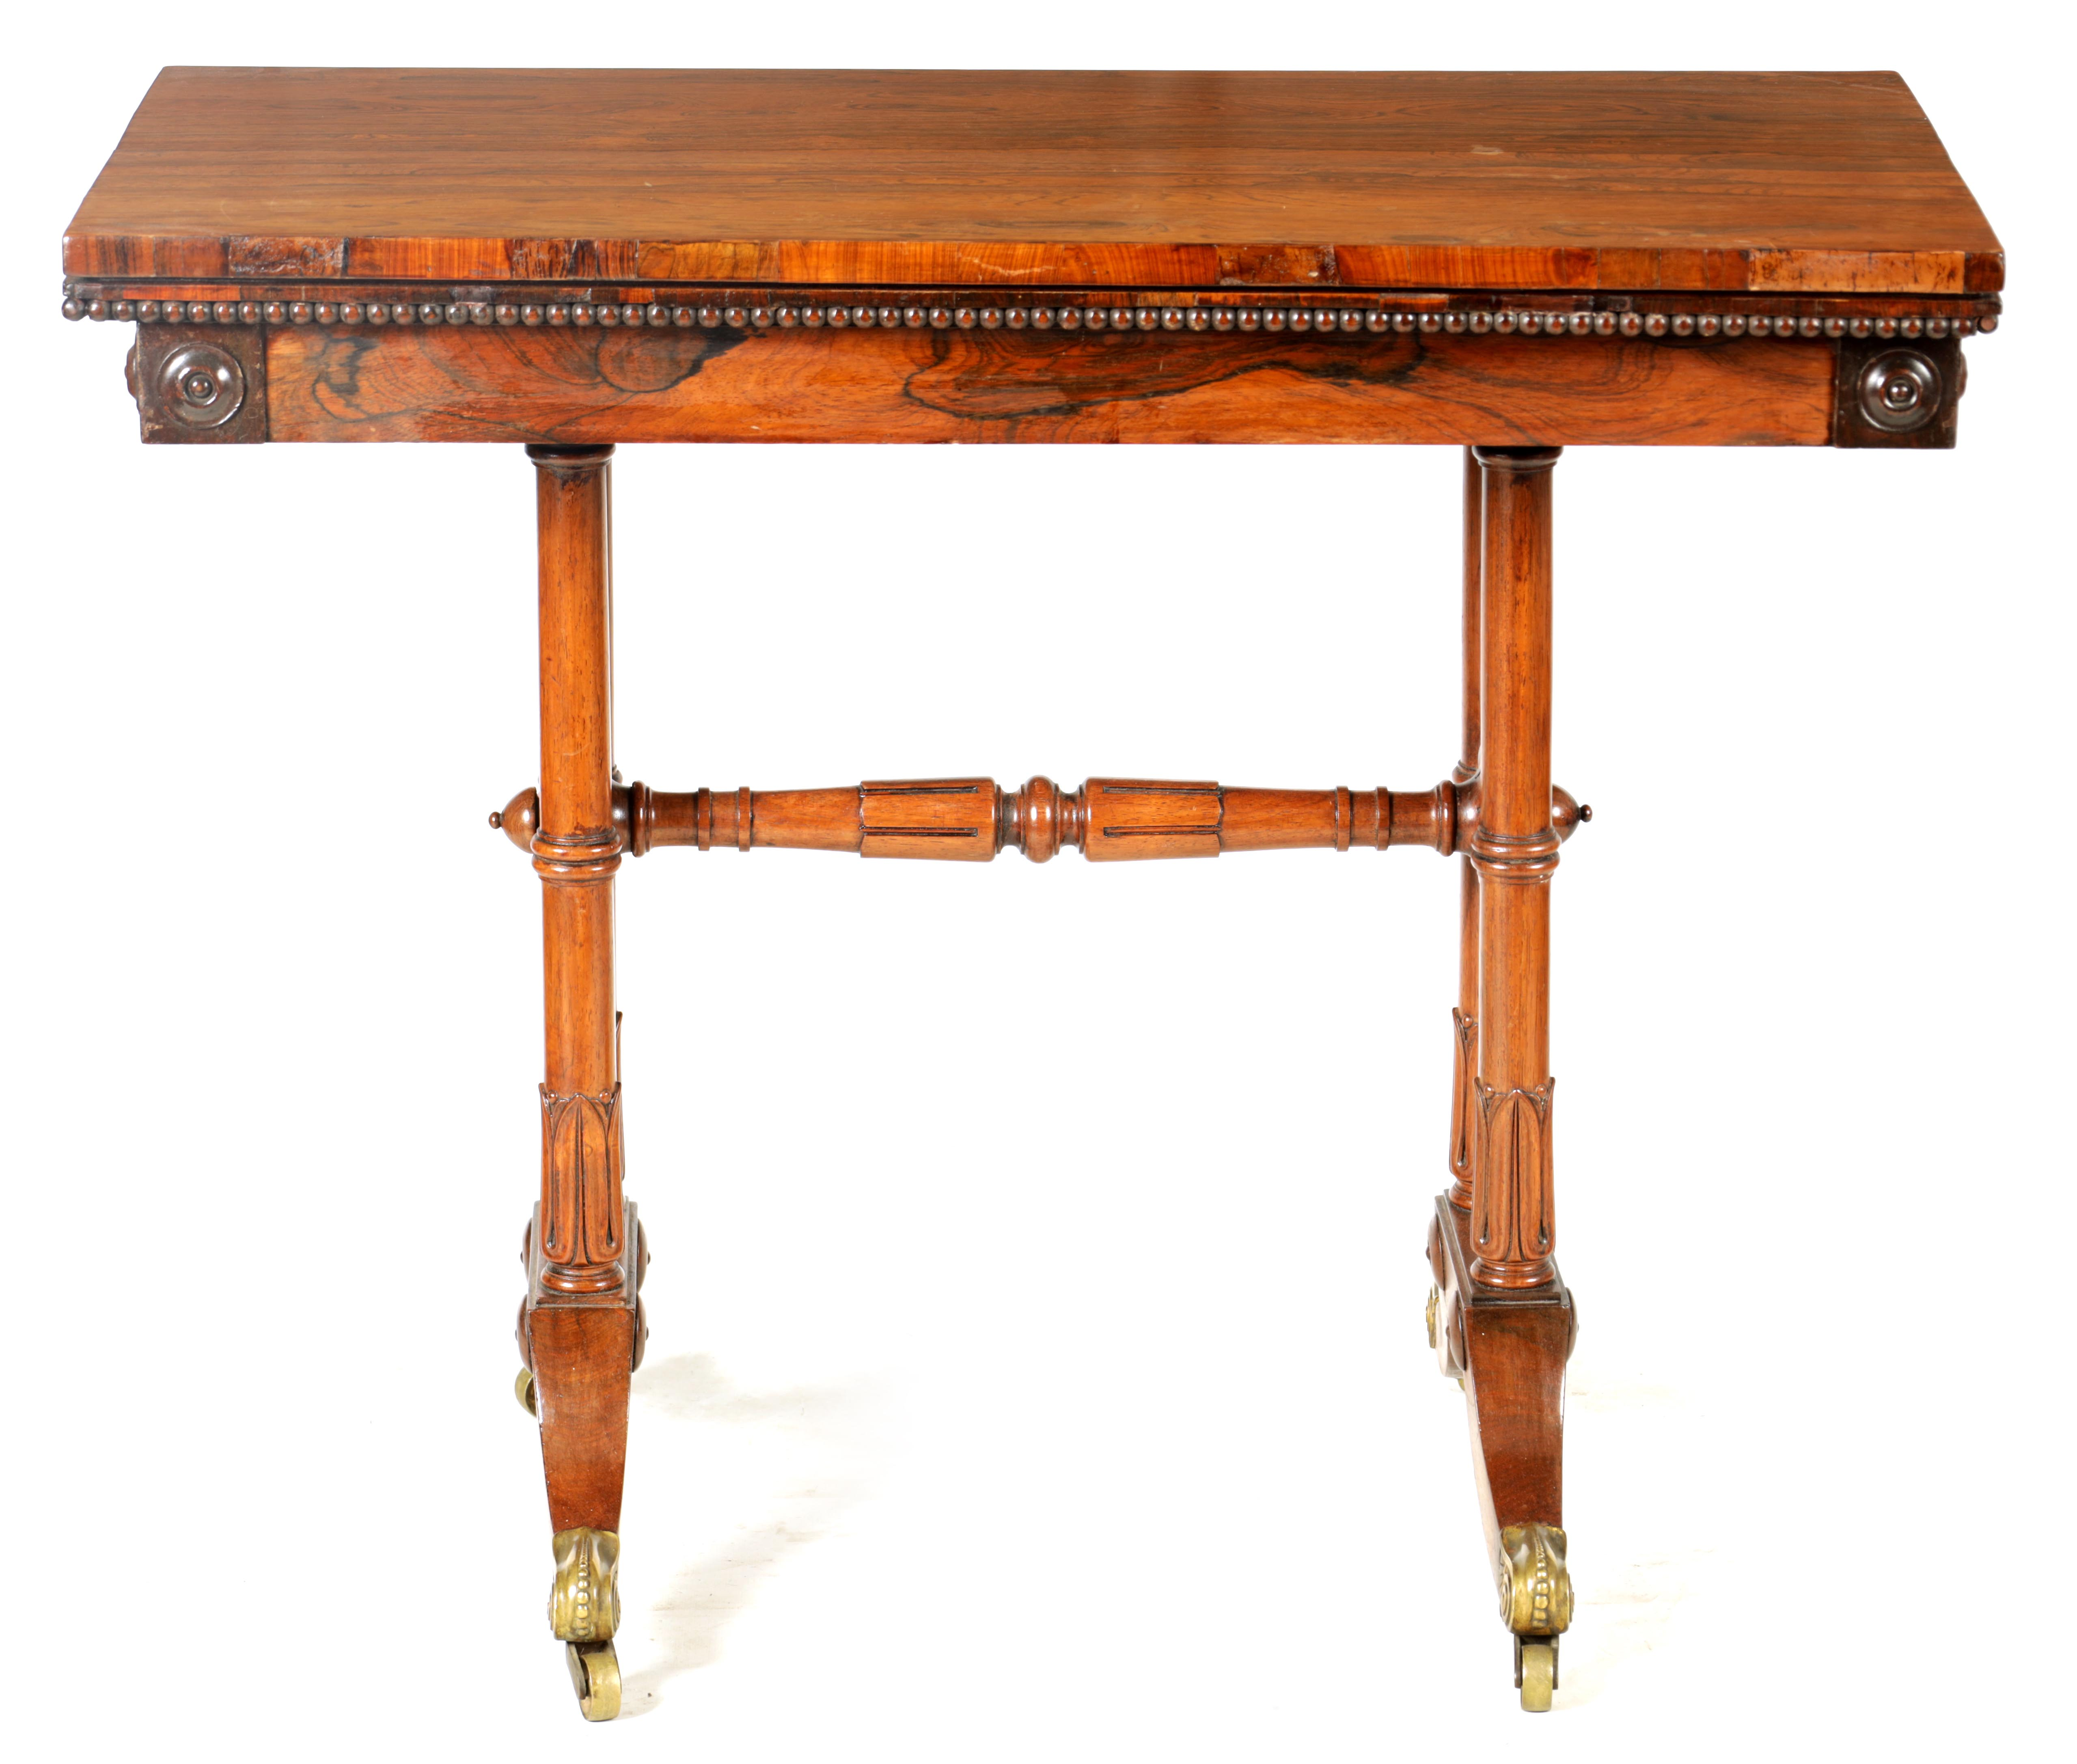 A REGENCY FIGURED ROSEWOOD CARD TABLE IN THE MANNER OF T & G SEDDON with revolving top revealing a